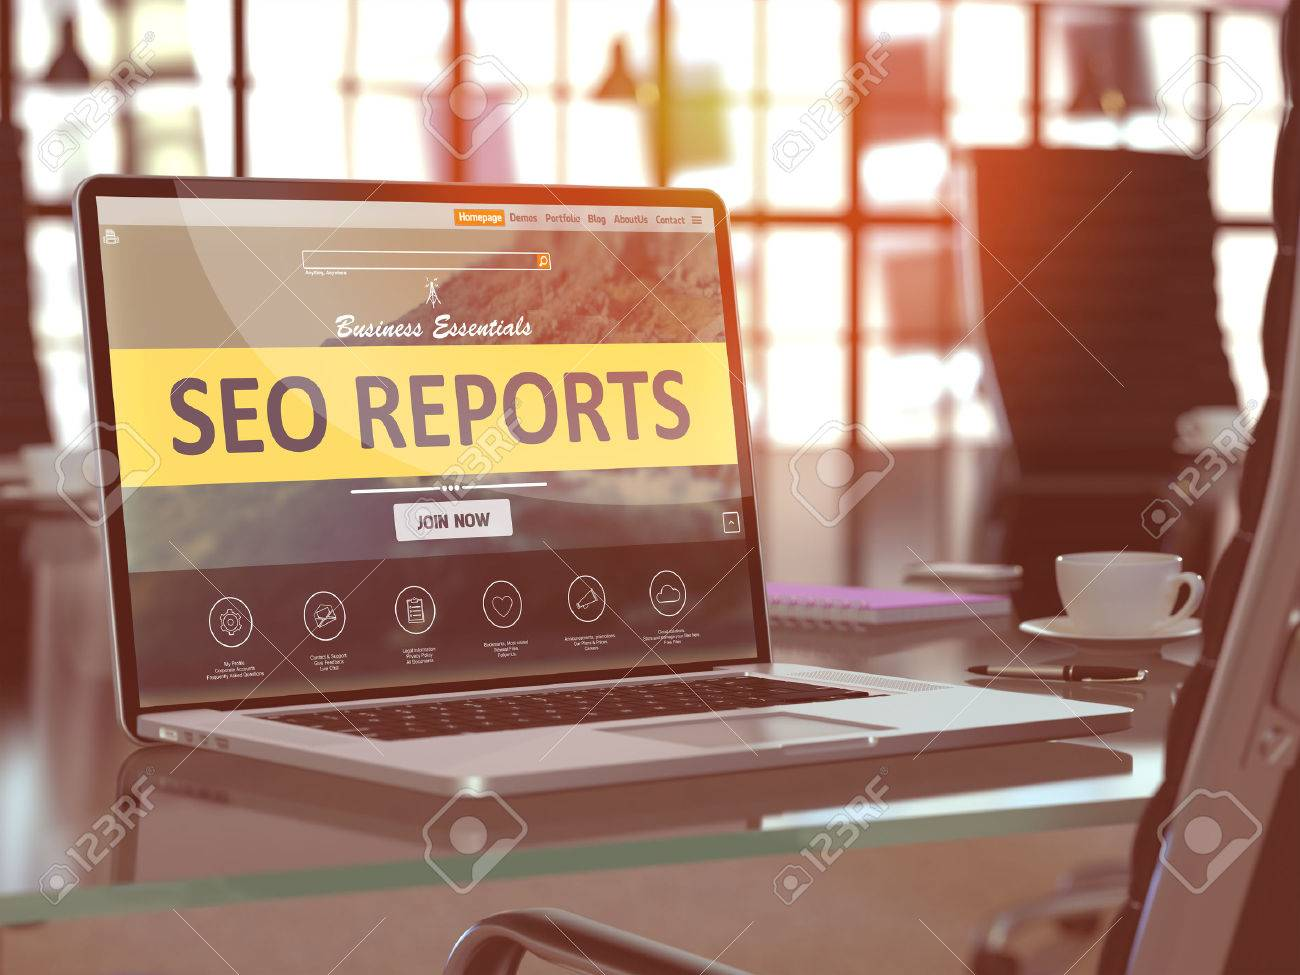 SEO - Search Engine Optimization - Reports Concept. Closeup Landing Page on Laptop Screen  on background of Comfortable Working Place in Modern Office. Blurred, Toned Image. Standard-Bild - 50904021